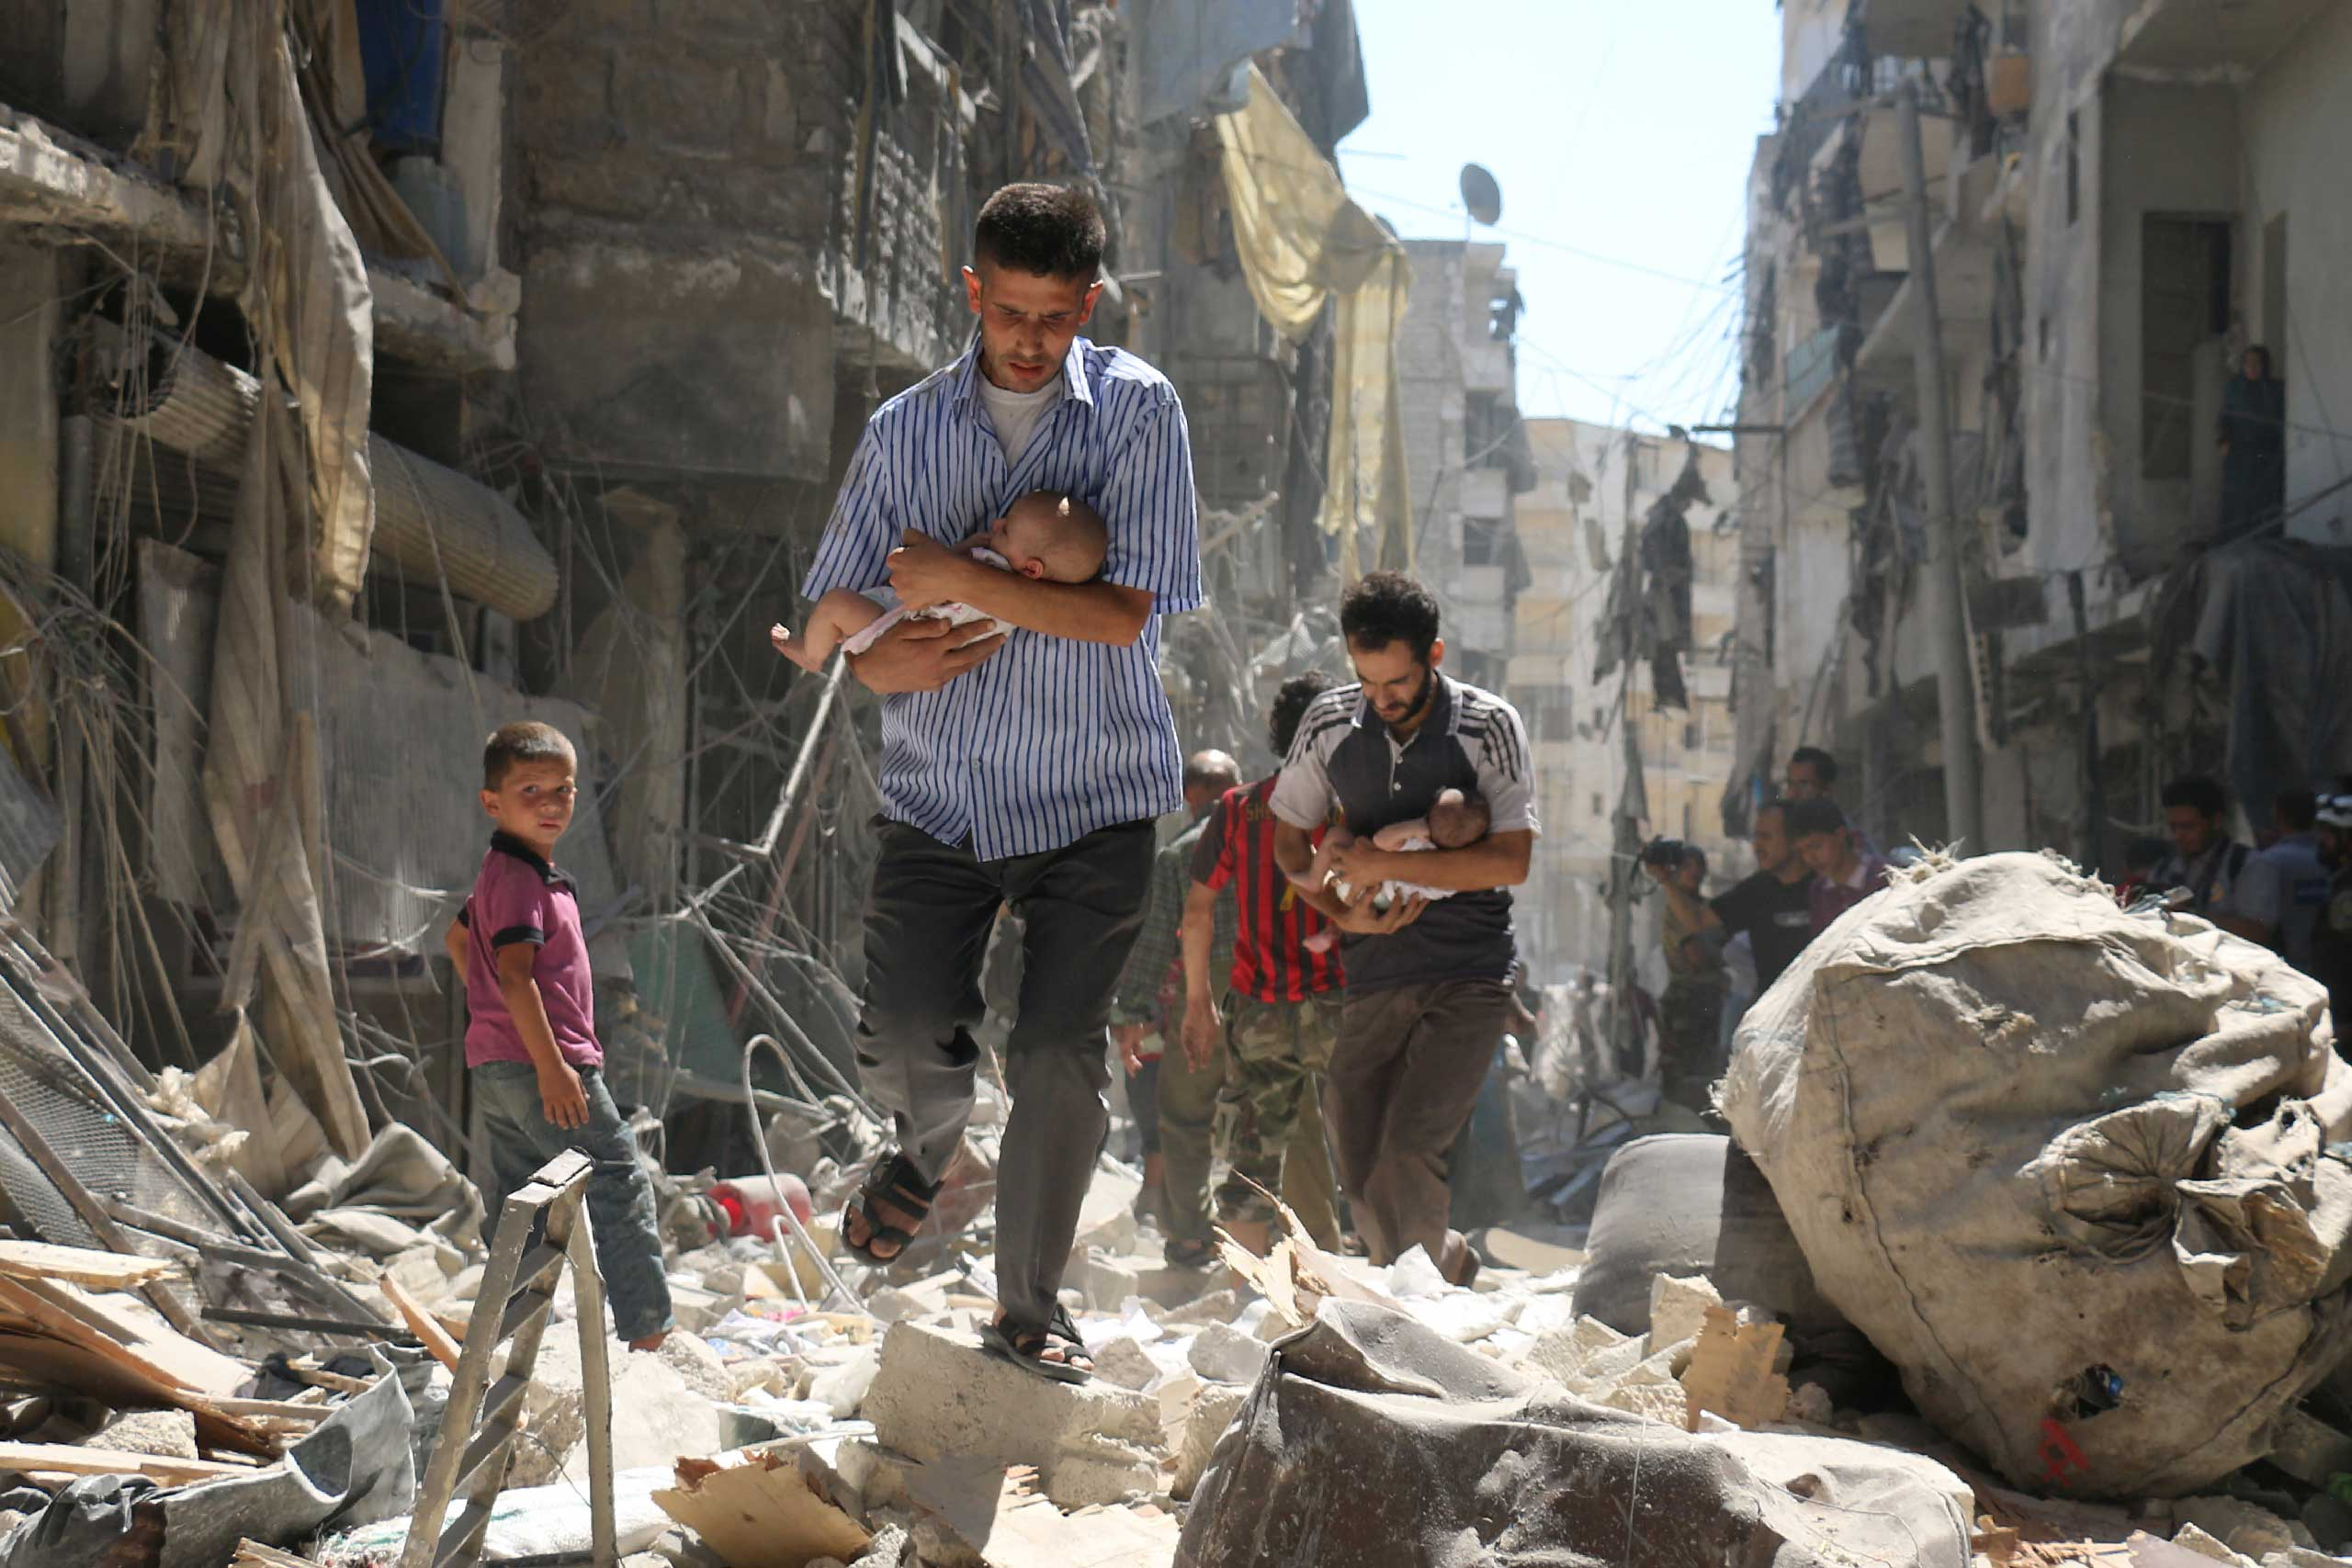 Syrian men carrying babies make their way through the rubble of destroyed buildings following a reported air strike on the rebel-held Salihin neighbourhood of the northern city of Aleppo, on Sept. 11, 2016.